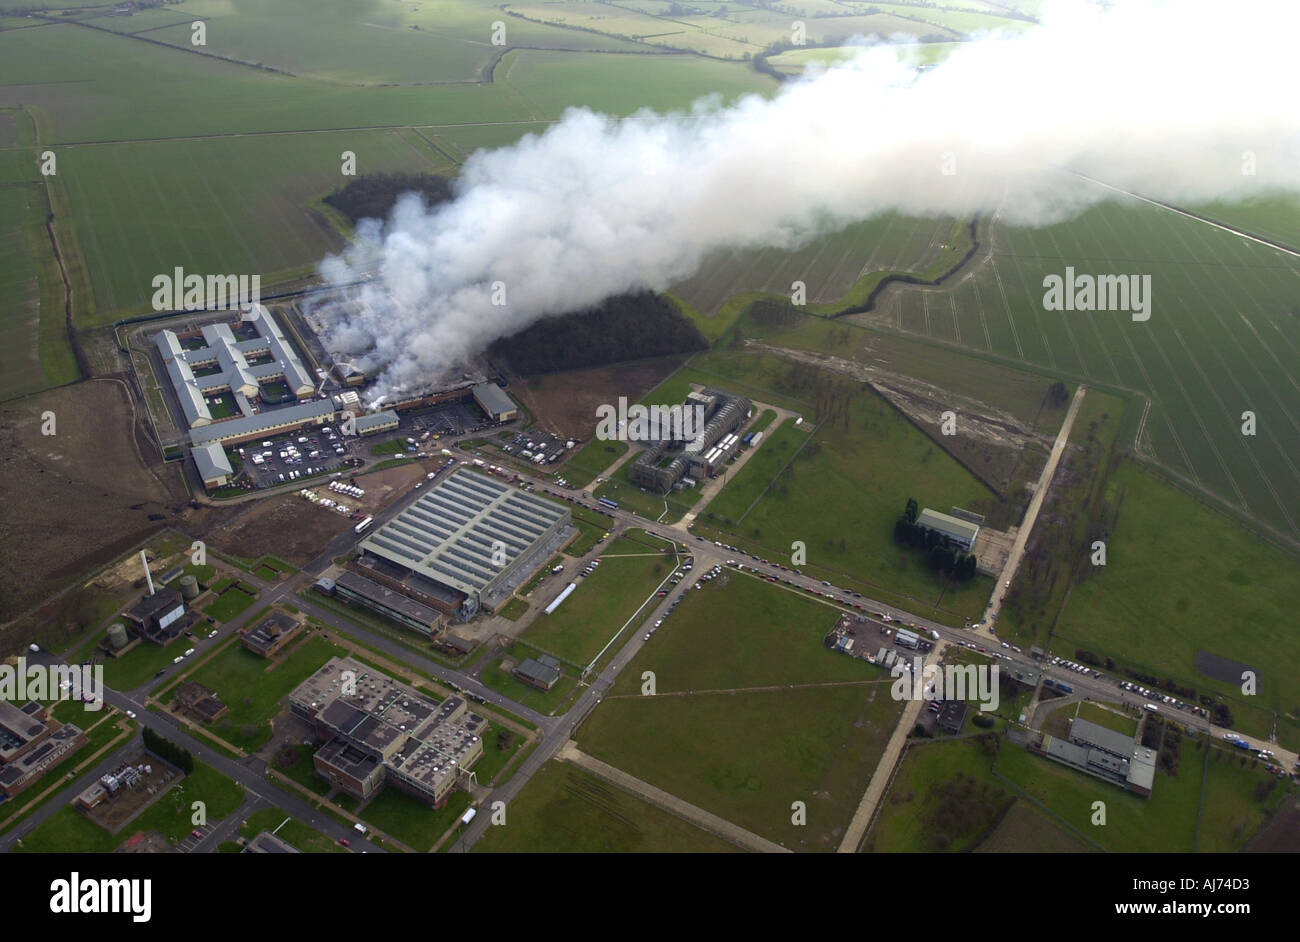 Yarlswood detention centre fire 14 2 2002 Bedfordshire UK - Stock Image